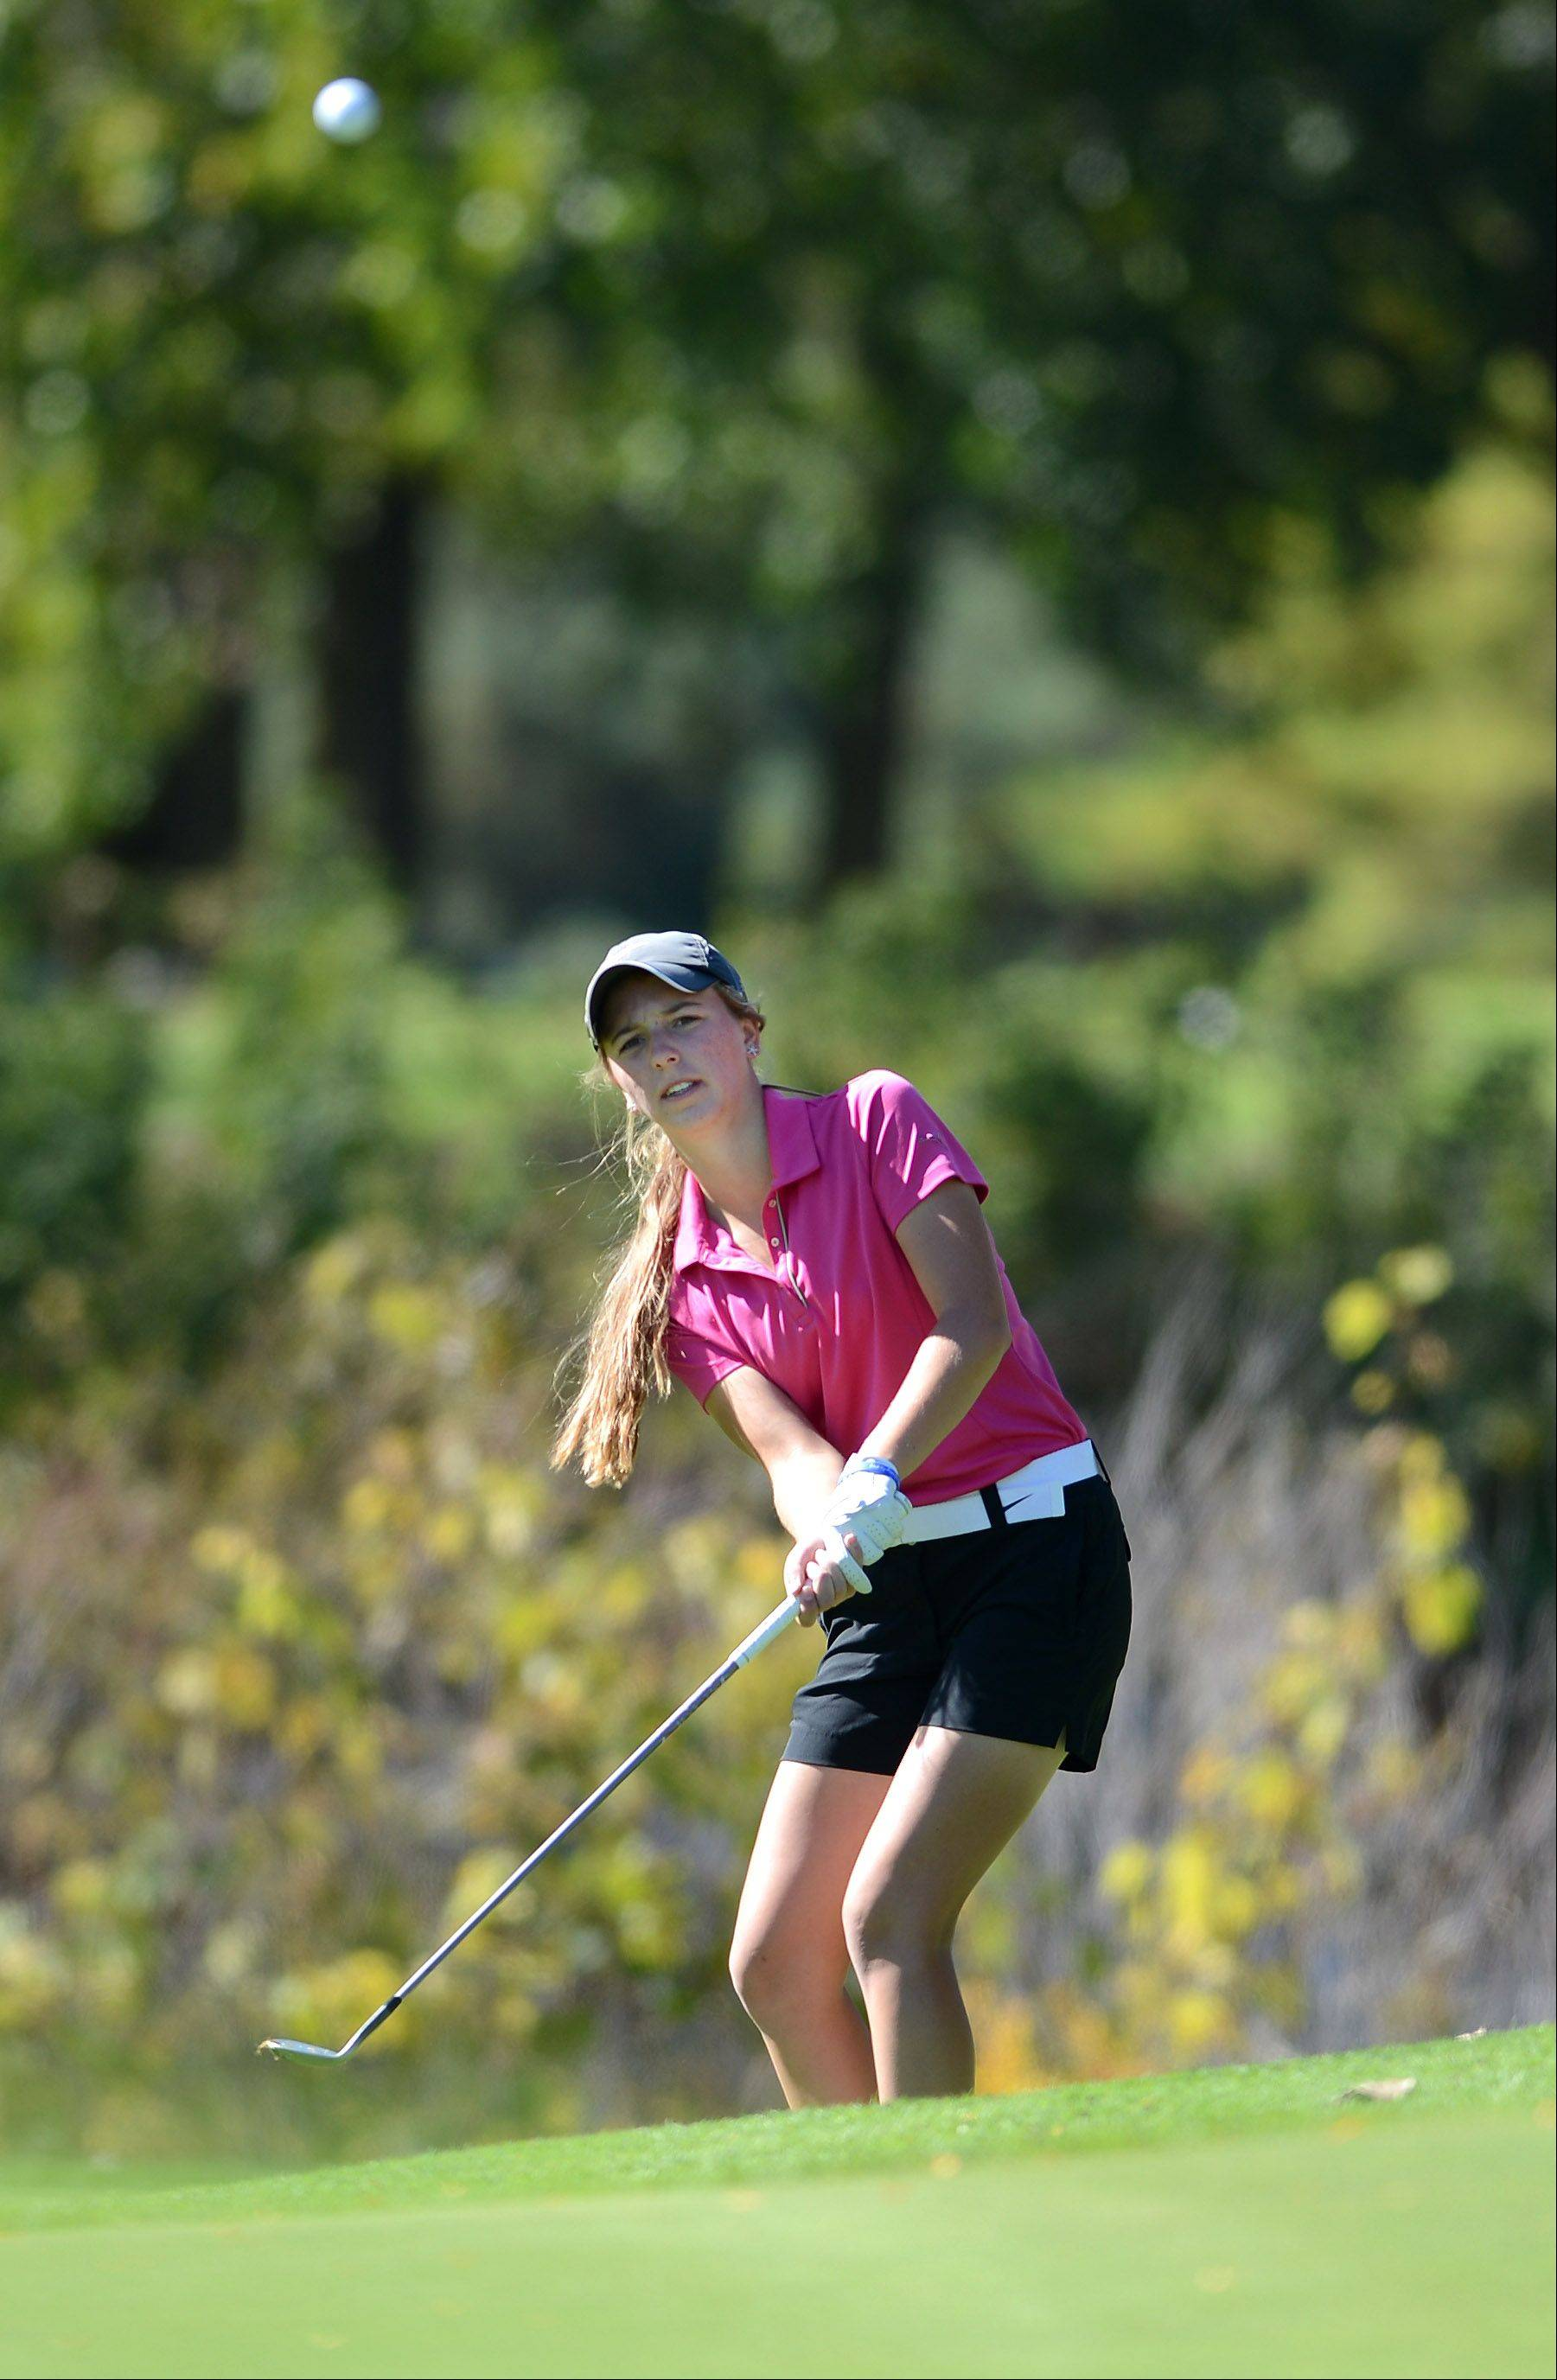 Bailey Bostler of Crystal Lake South (and the Crystal Lake Central co-op team) chips on to the 5th green during Wednesday's Prairie Ridge regional golf action at Prairie Isle golf course in Crystal Lake